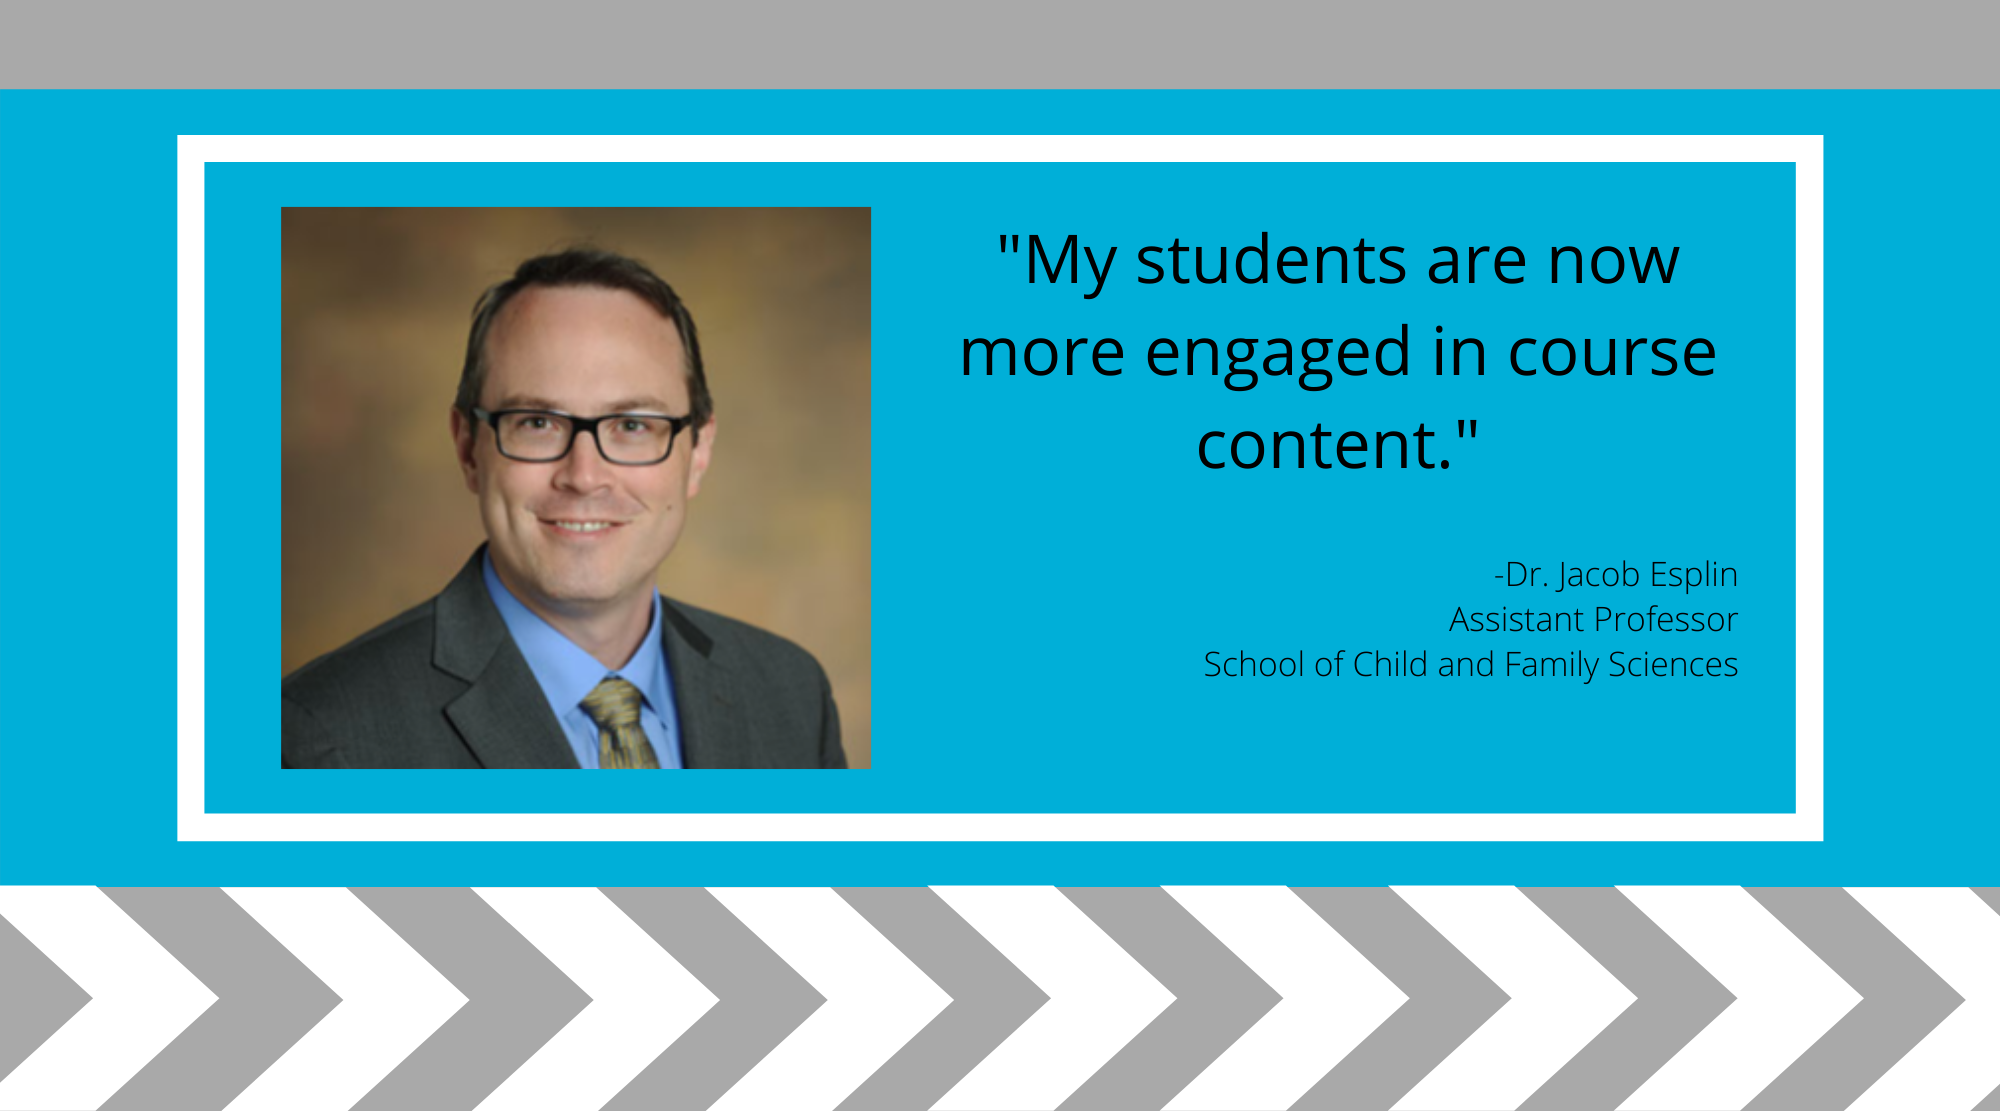 Quote from ACUE testimonial by Dr. Jacob Esplin from the School of Child and Family Sciences.